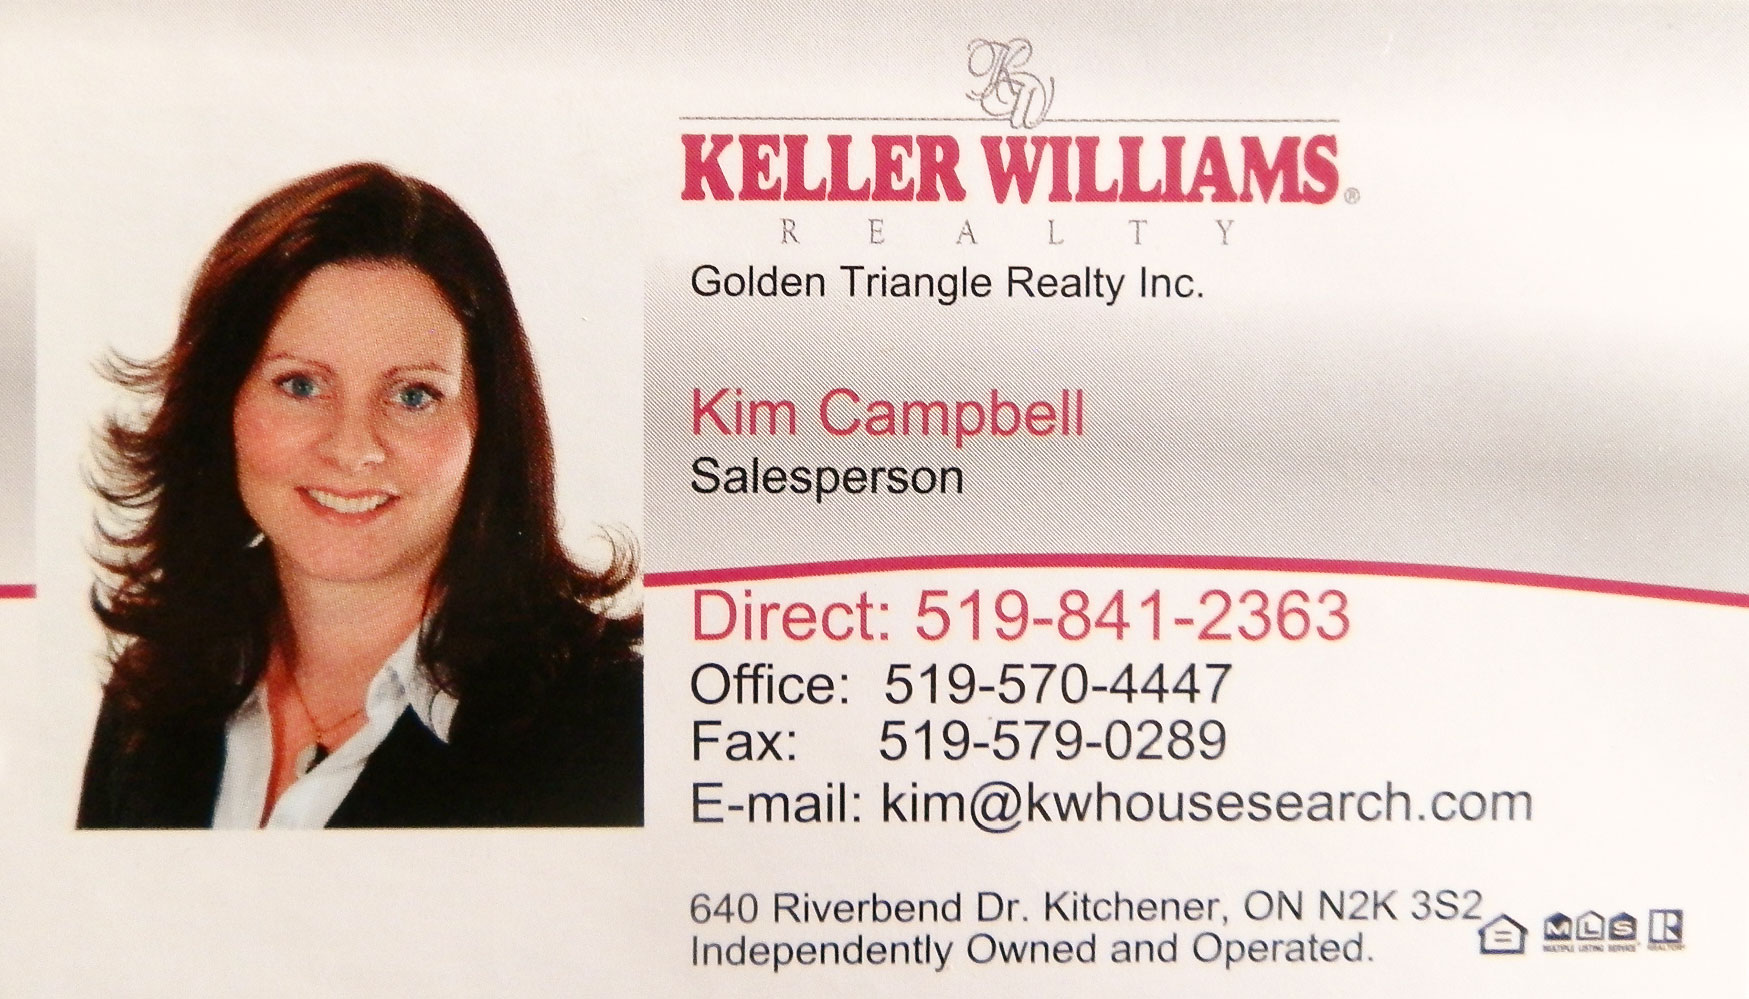 Kim Campbell Keller Williams Realty